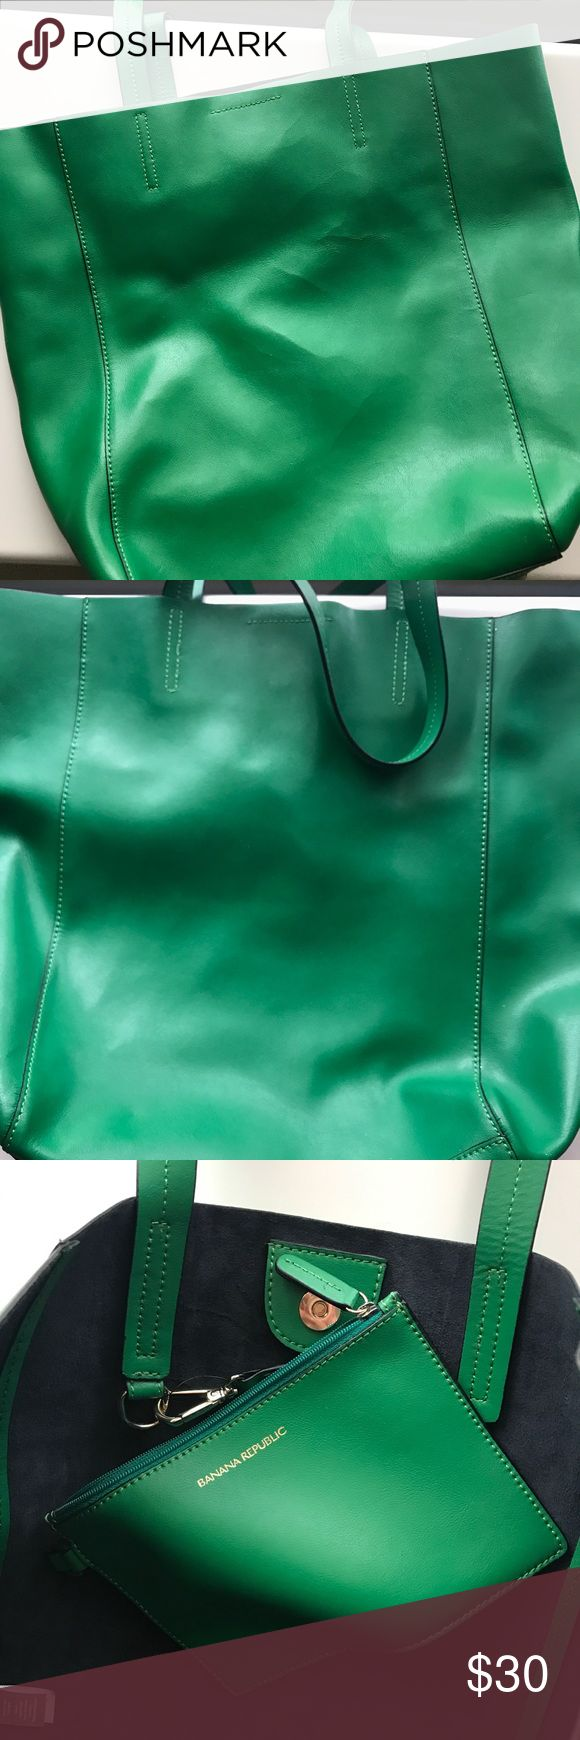 Banana Republic Emerald Green Tote This super cute emerald green Tote was only used a few times, there is no sign of wear! It is genuine leather. Banana Republic Bags Totes